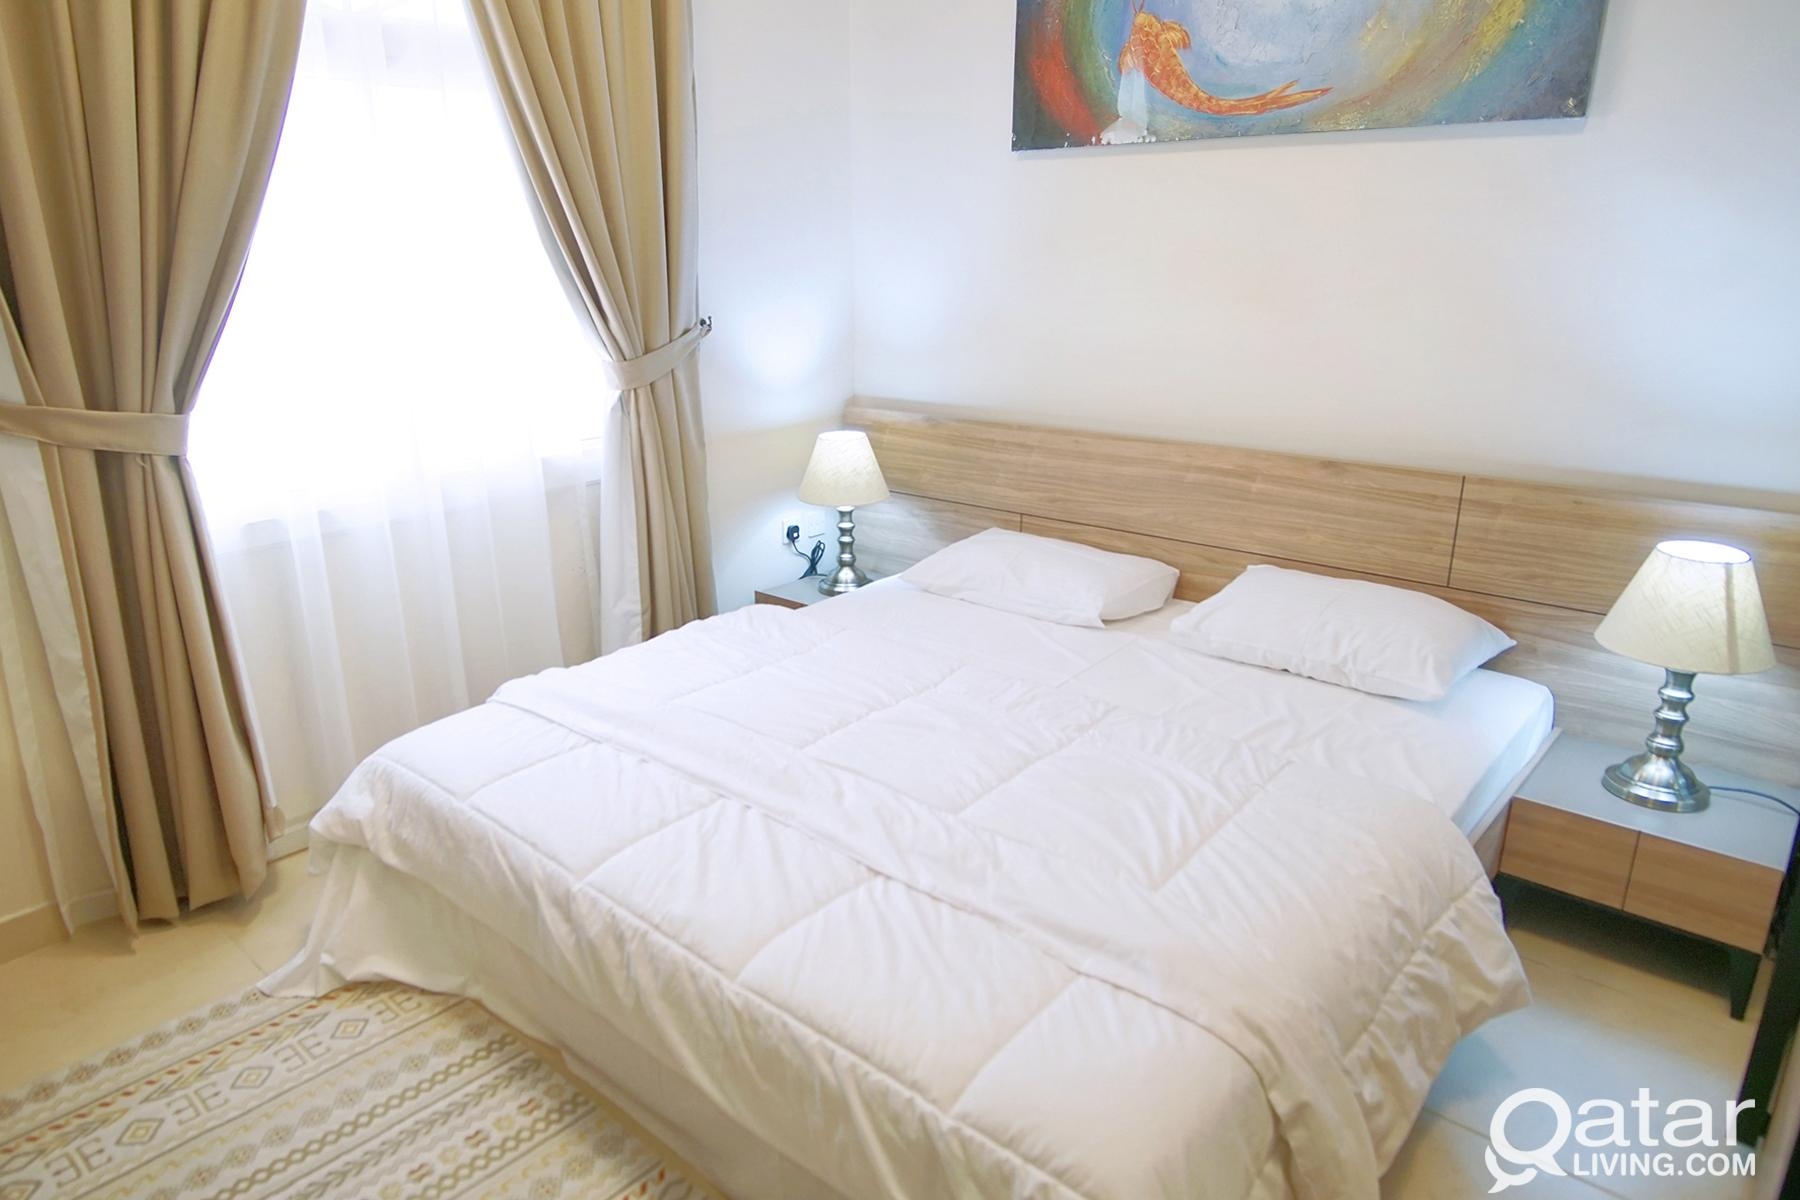 LUXRIOUS 1 BED FURNISHED APART NEAR METRO 1 Month